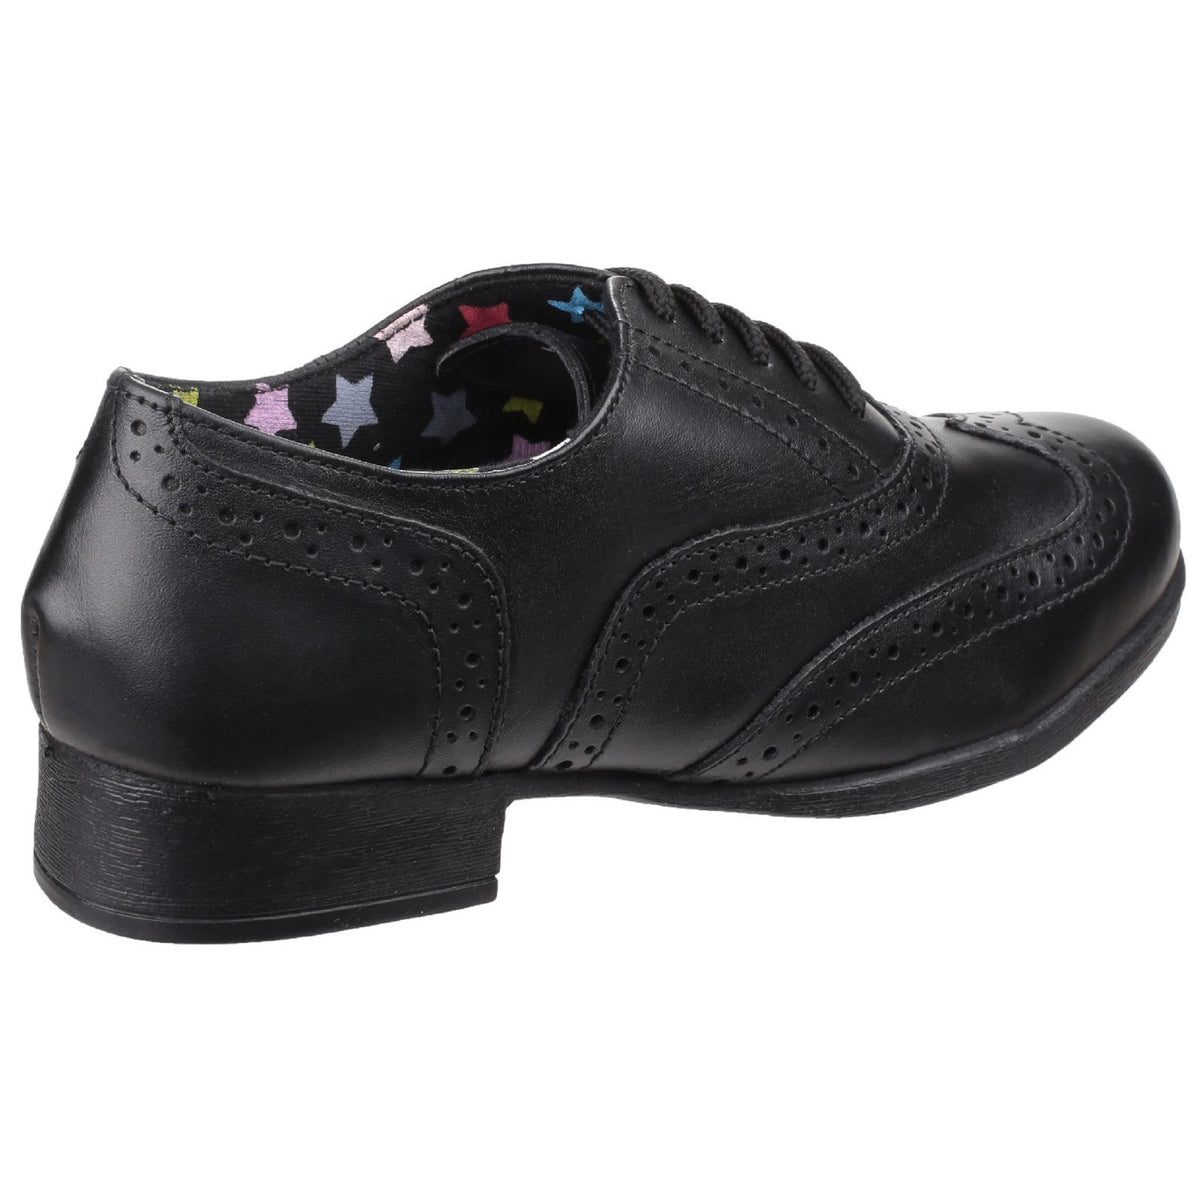 Girls Hush Puppies Black Kada Back To School Shoe-9191